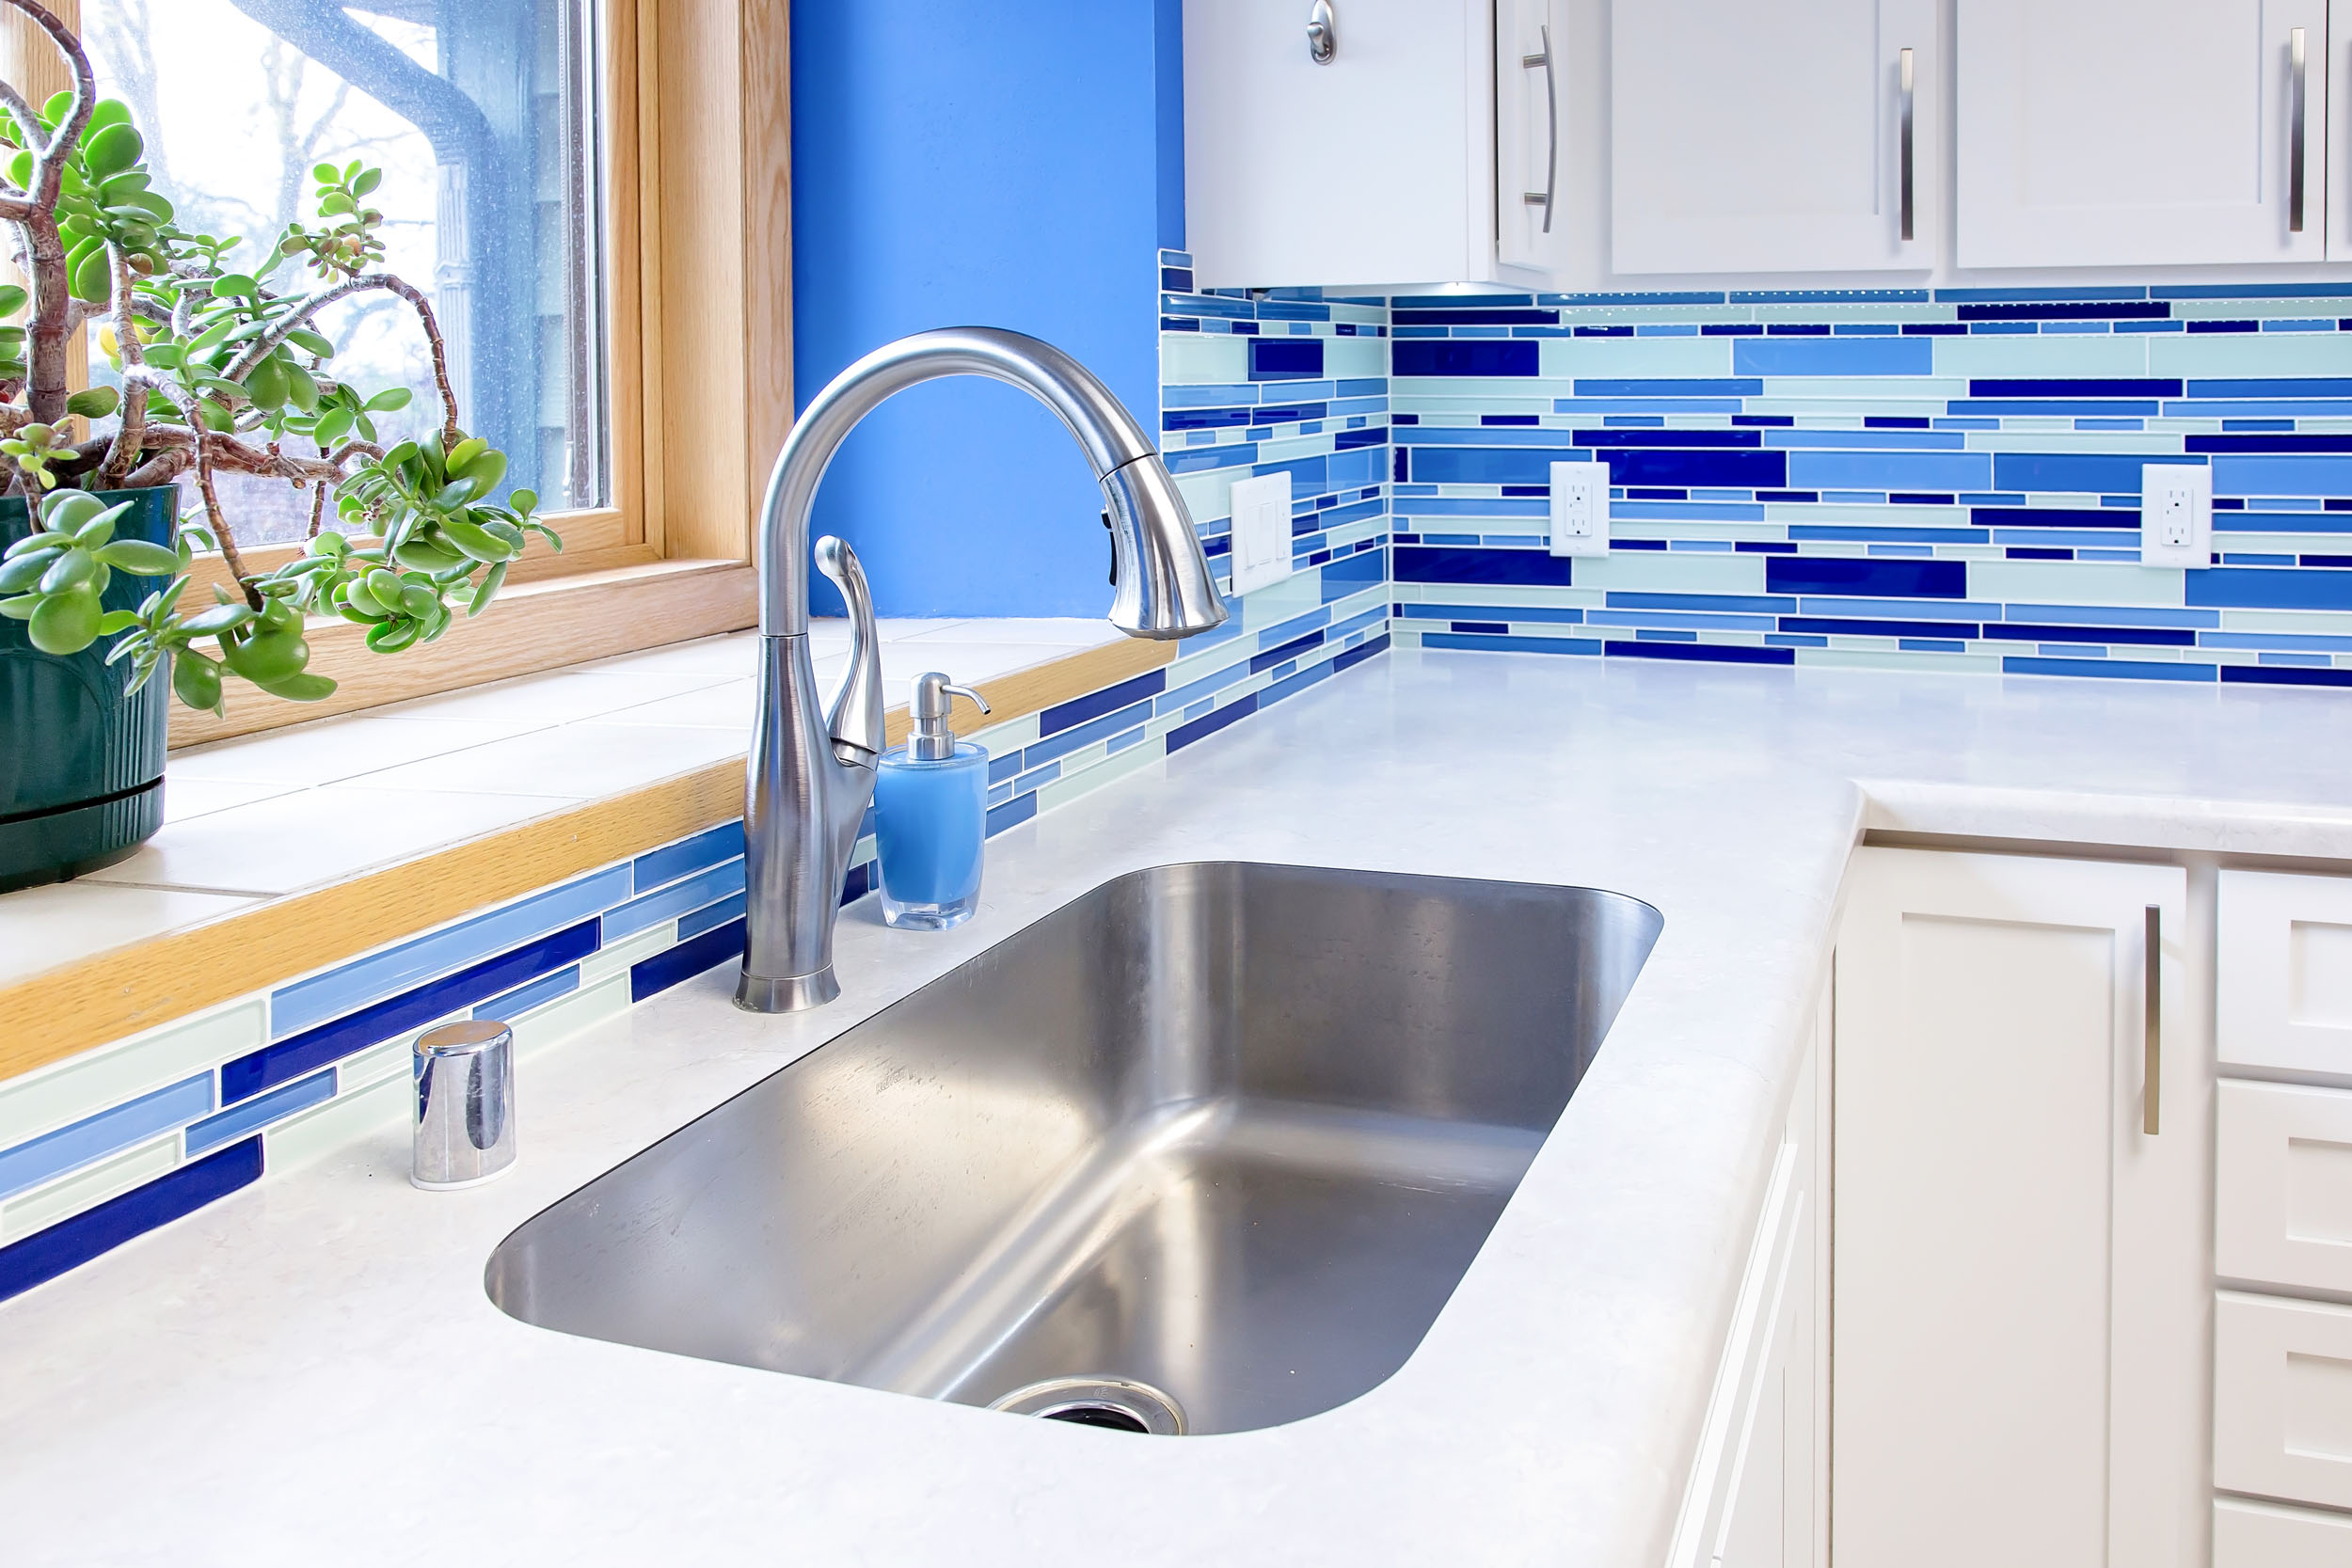 - Can you spot what's unique about this undermount kitchen sink? Answer: it's in a laminate countertop! There are reliable options available which allow you to choose inexpensive and easy to clean laminate tops while still benefiting from the function and beauty of an undermounted sink.